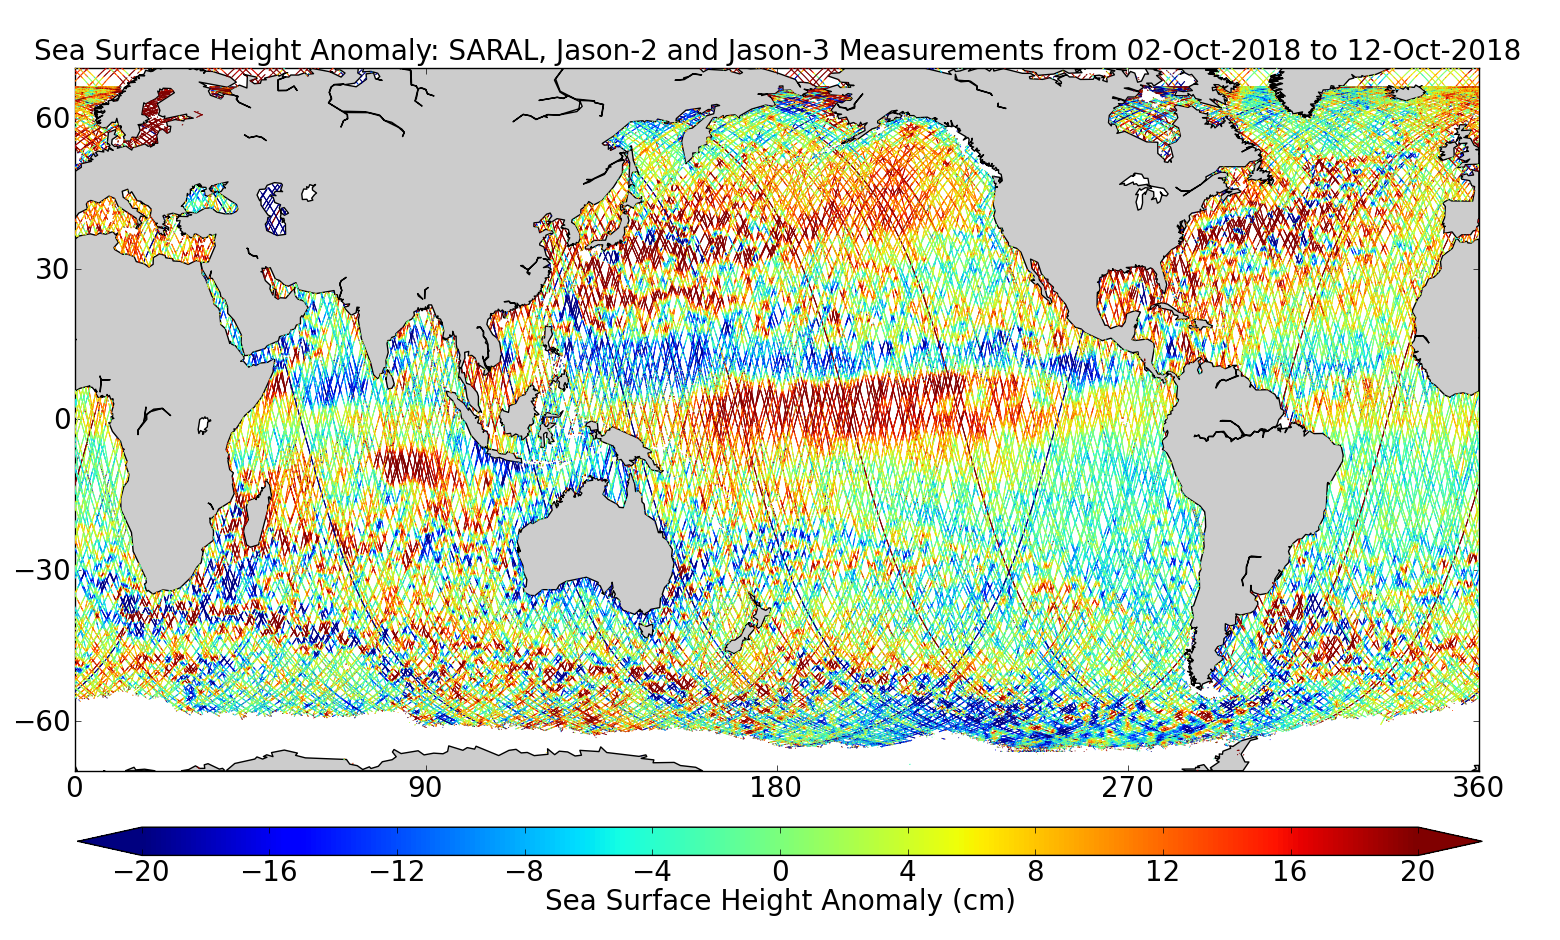 Sea Surface Height Anomaly: SARAL, Jason-2 and Jason-3 Measurements from 02-Oct-2018 to 12-Oct-2018